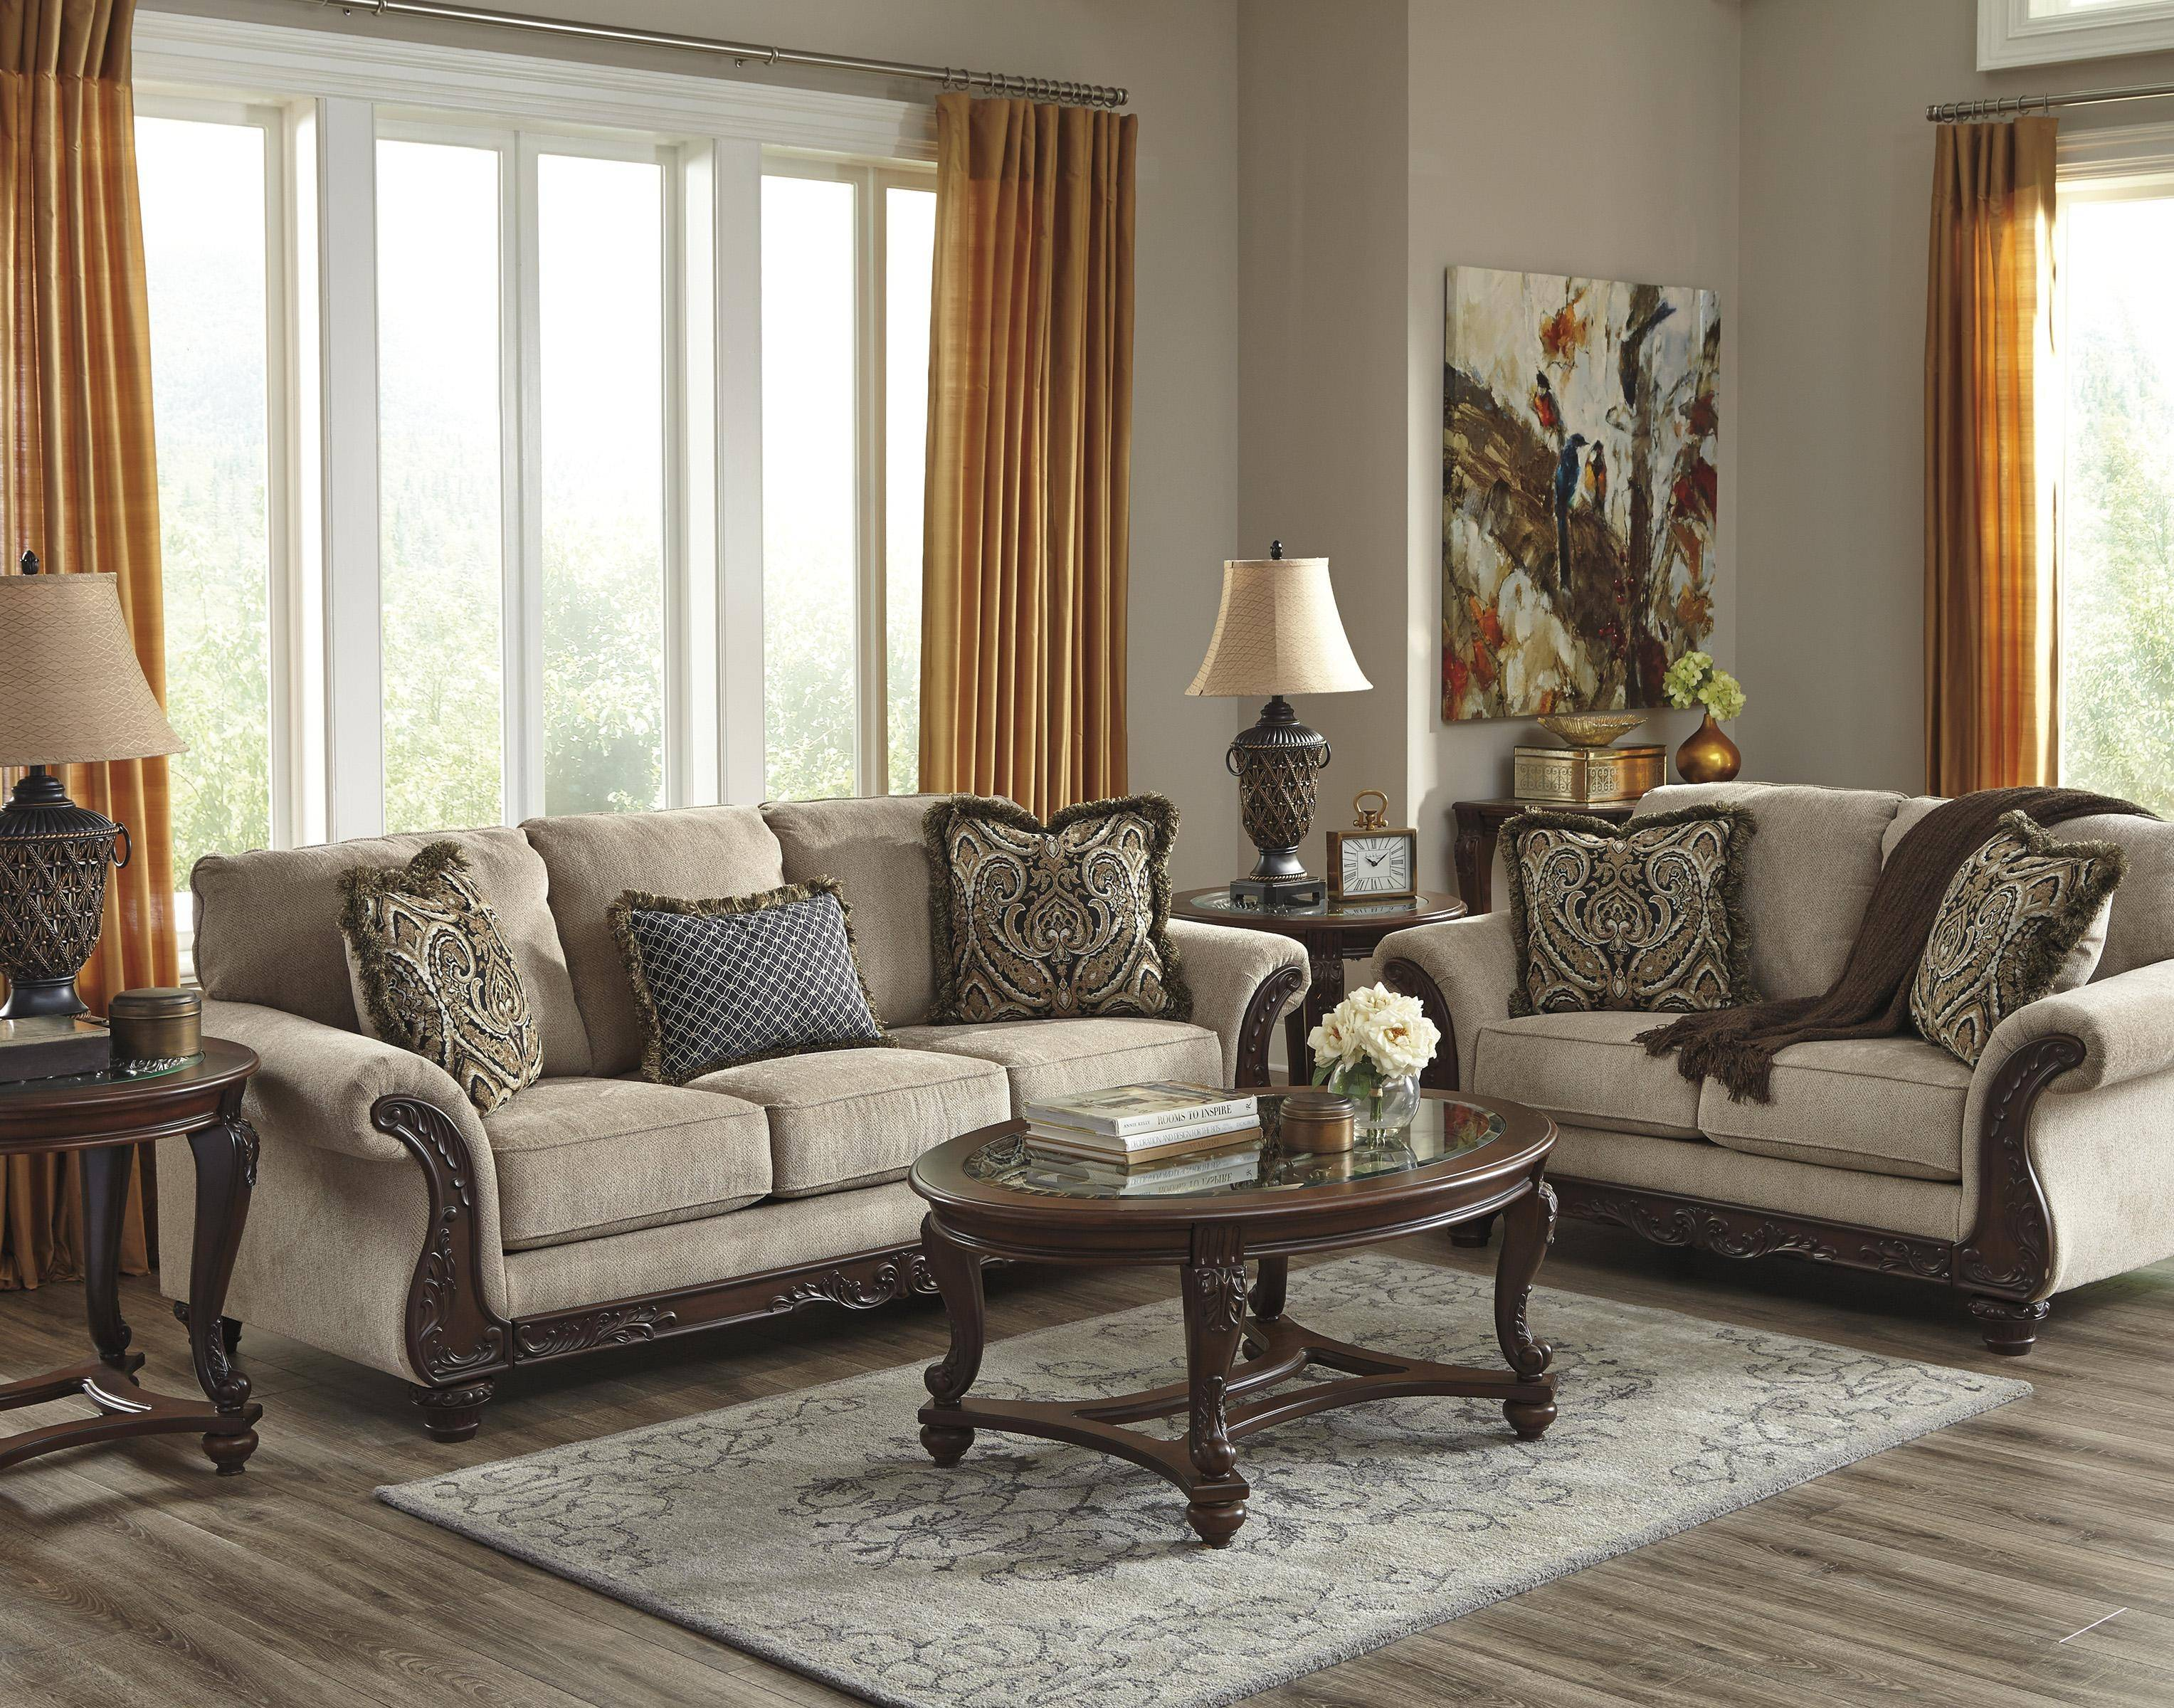 Ashley Laytonsville 2 Piece Living Room Set In Pebble 72002 38 35 Kit